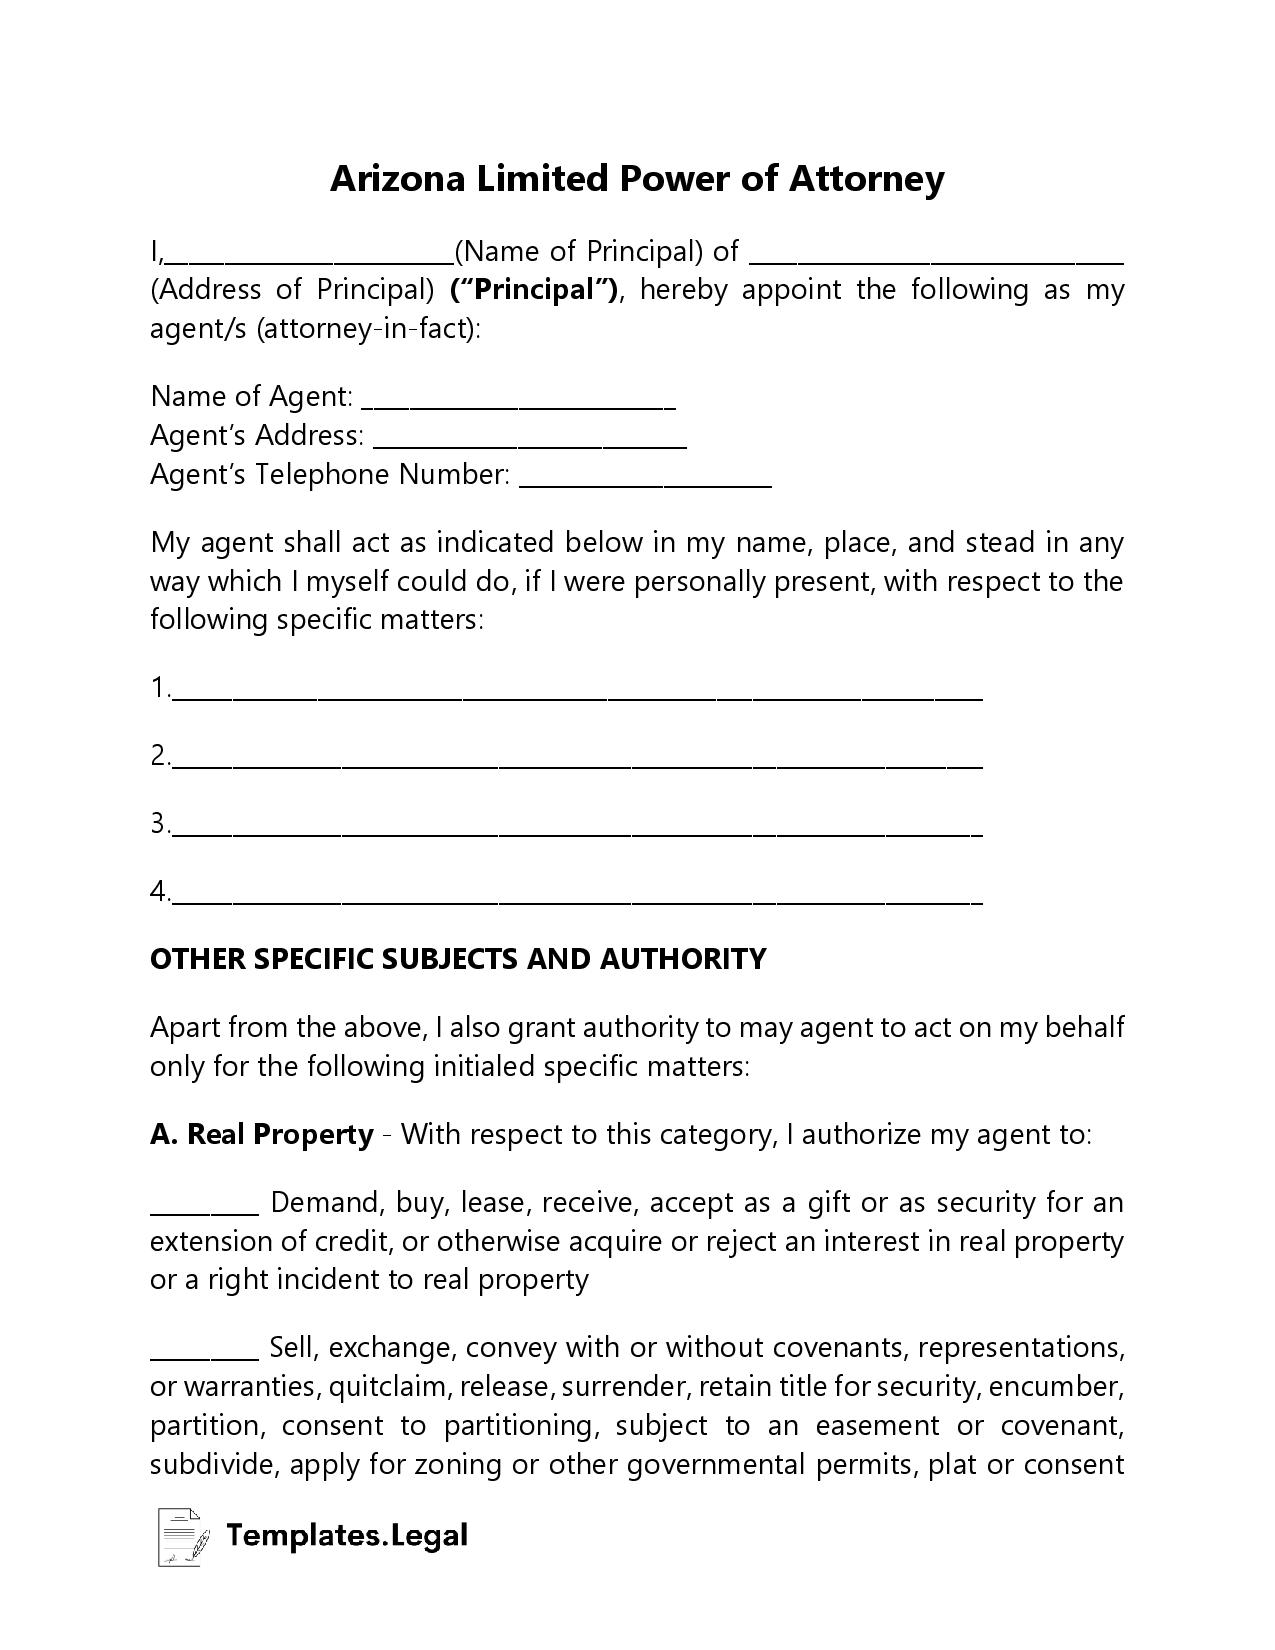 Arizona Limited Power of Attorney - Templates.Legal